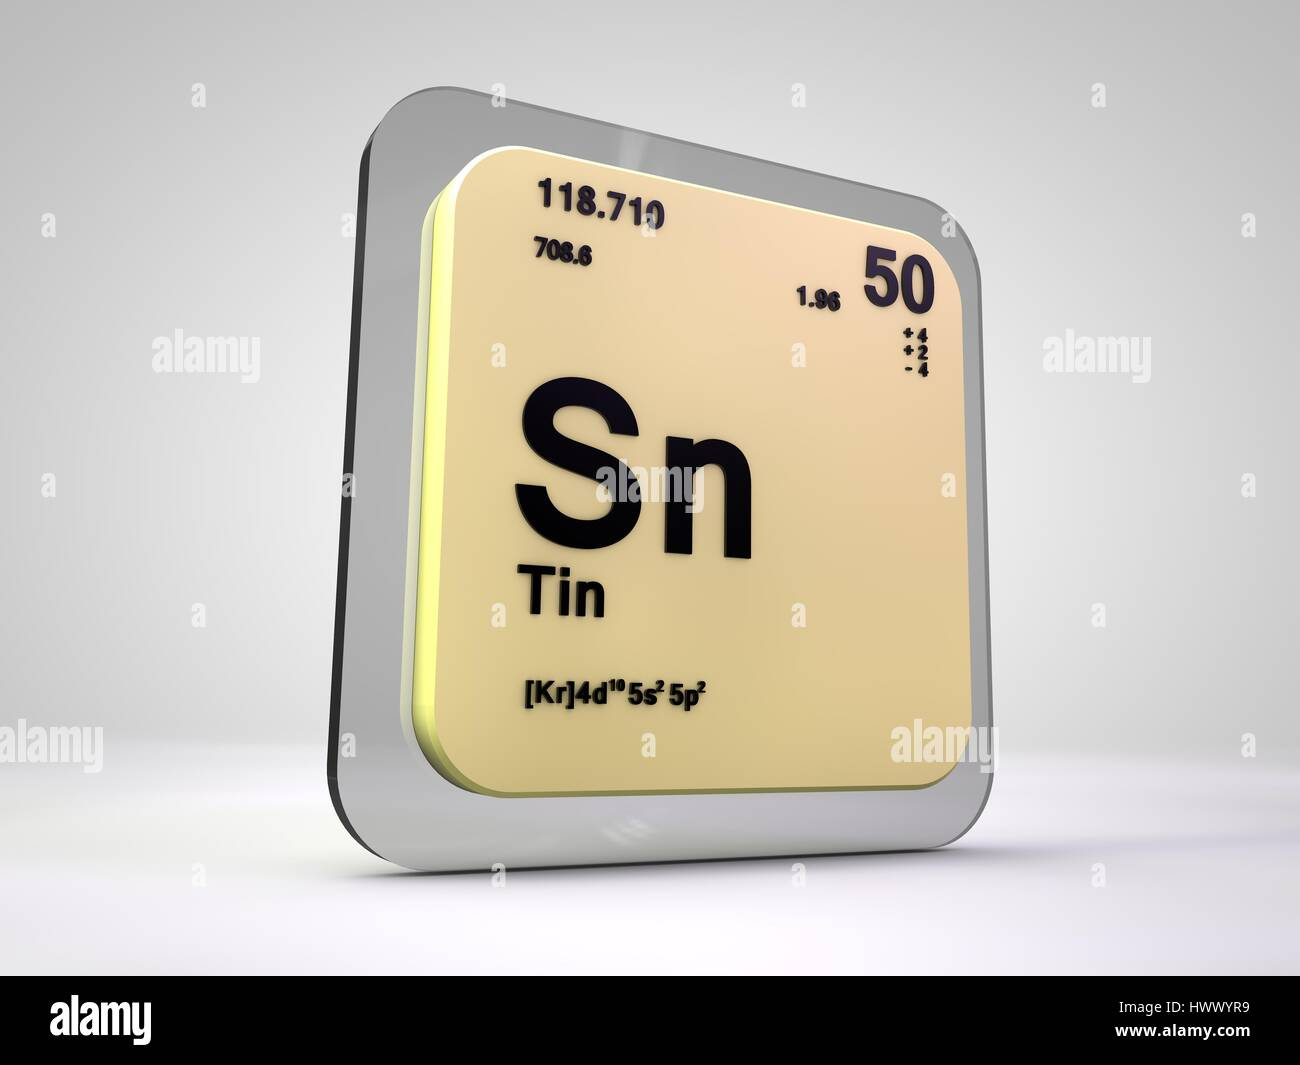 Tin sn chemical element periodic table 3d render stock photo tin sn chemical element periodic table 3d render urtaz Gallery